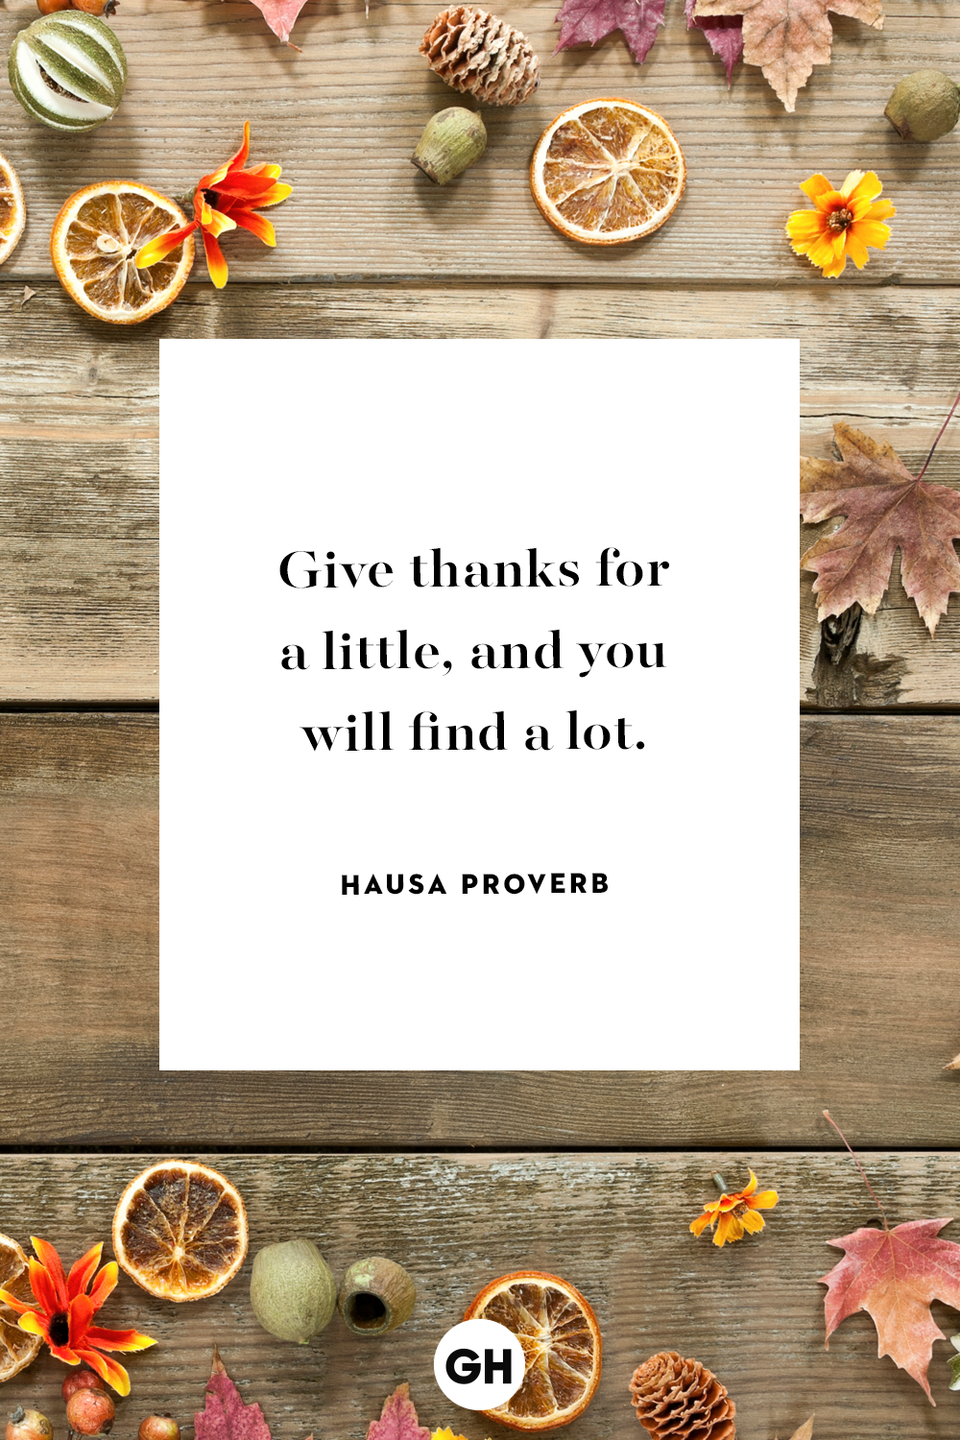 <p>Give thanks for a little, and you will find a lot.</p>